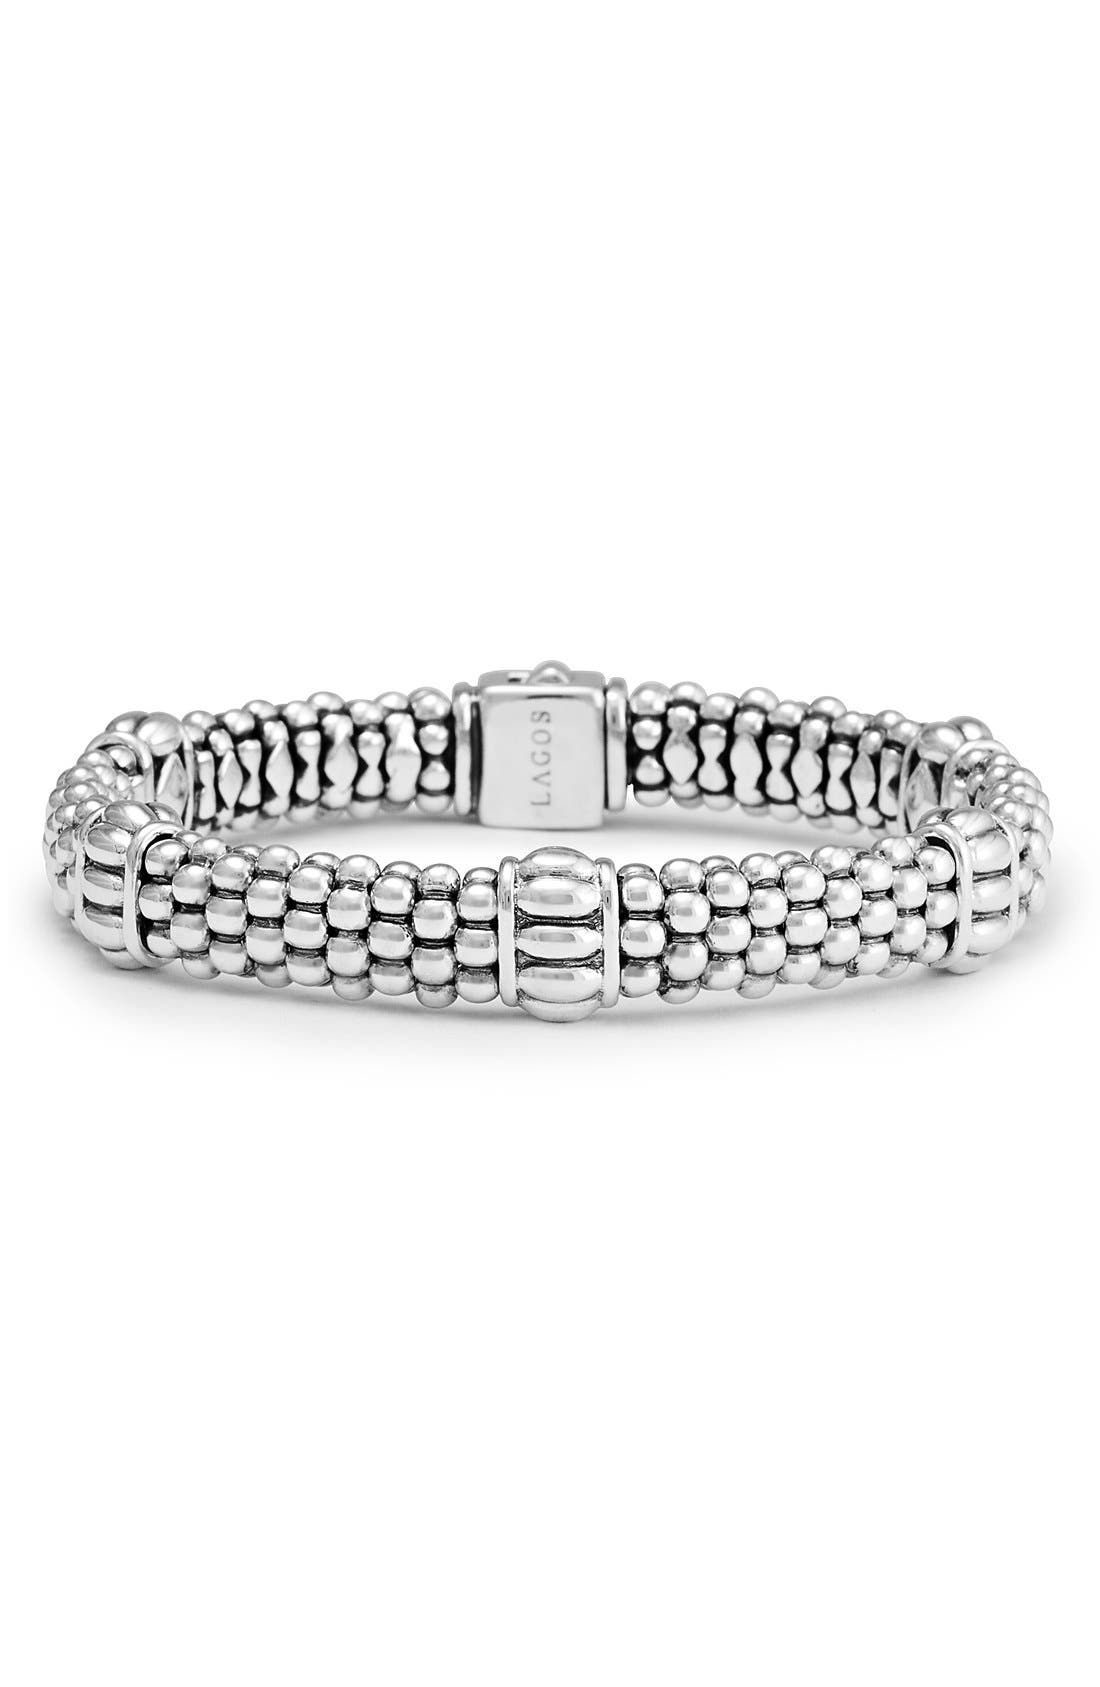 Fluted Station Caviar Rope Bracelet,                             Main thumbnail 1, color,                             SILVER